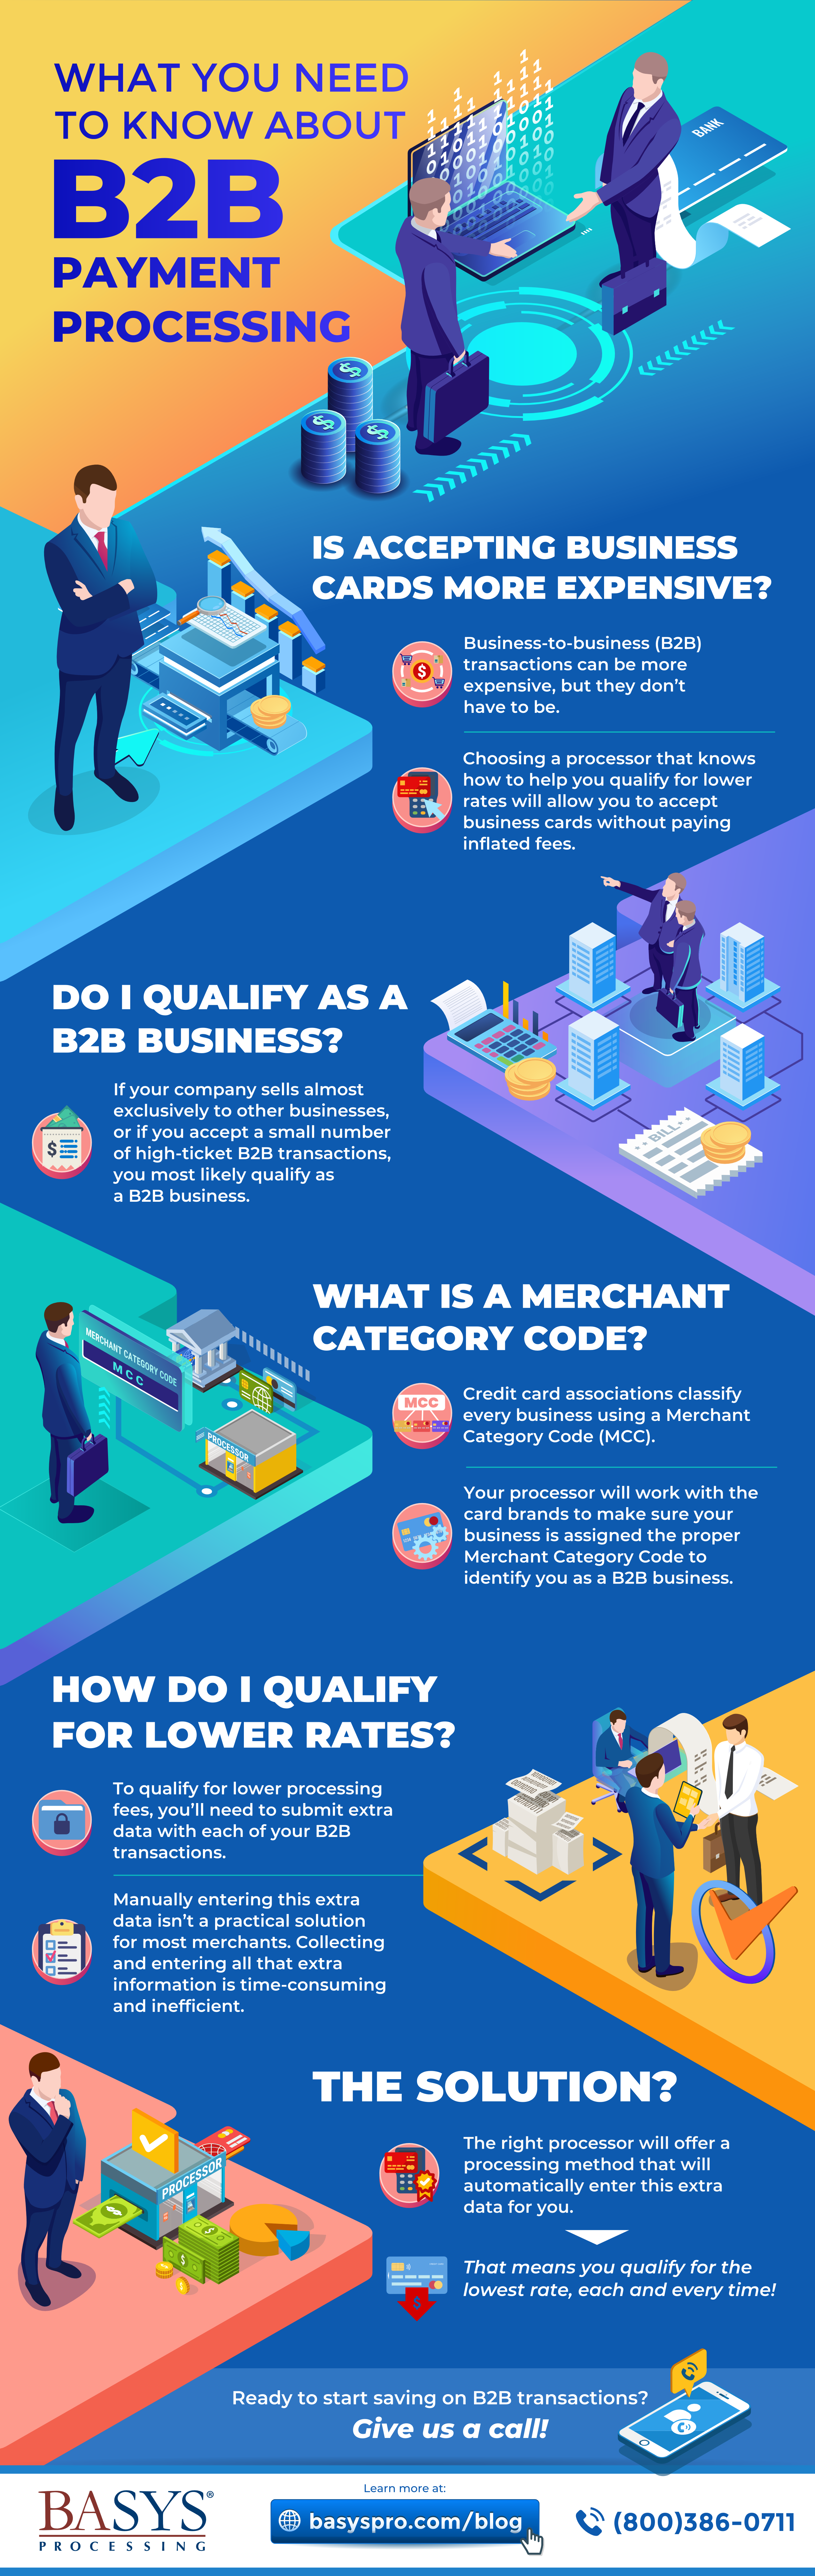 What You Need to Know About B2B Payment Processing